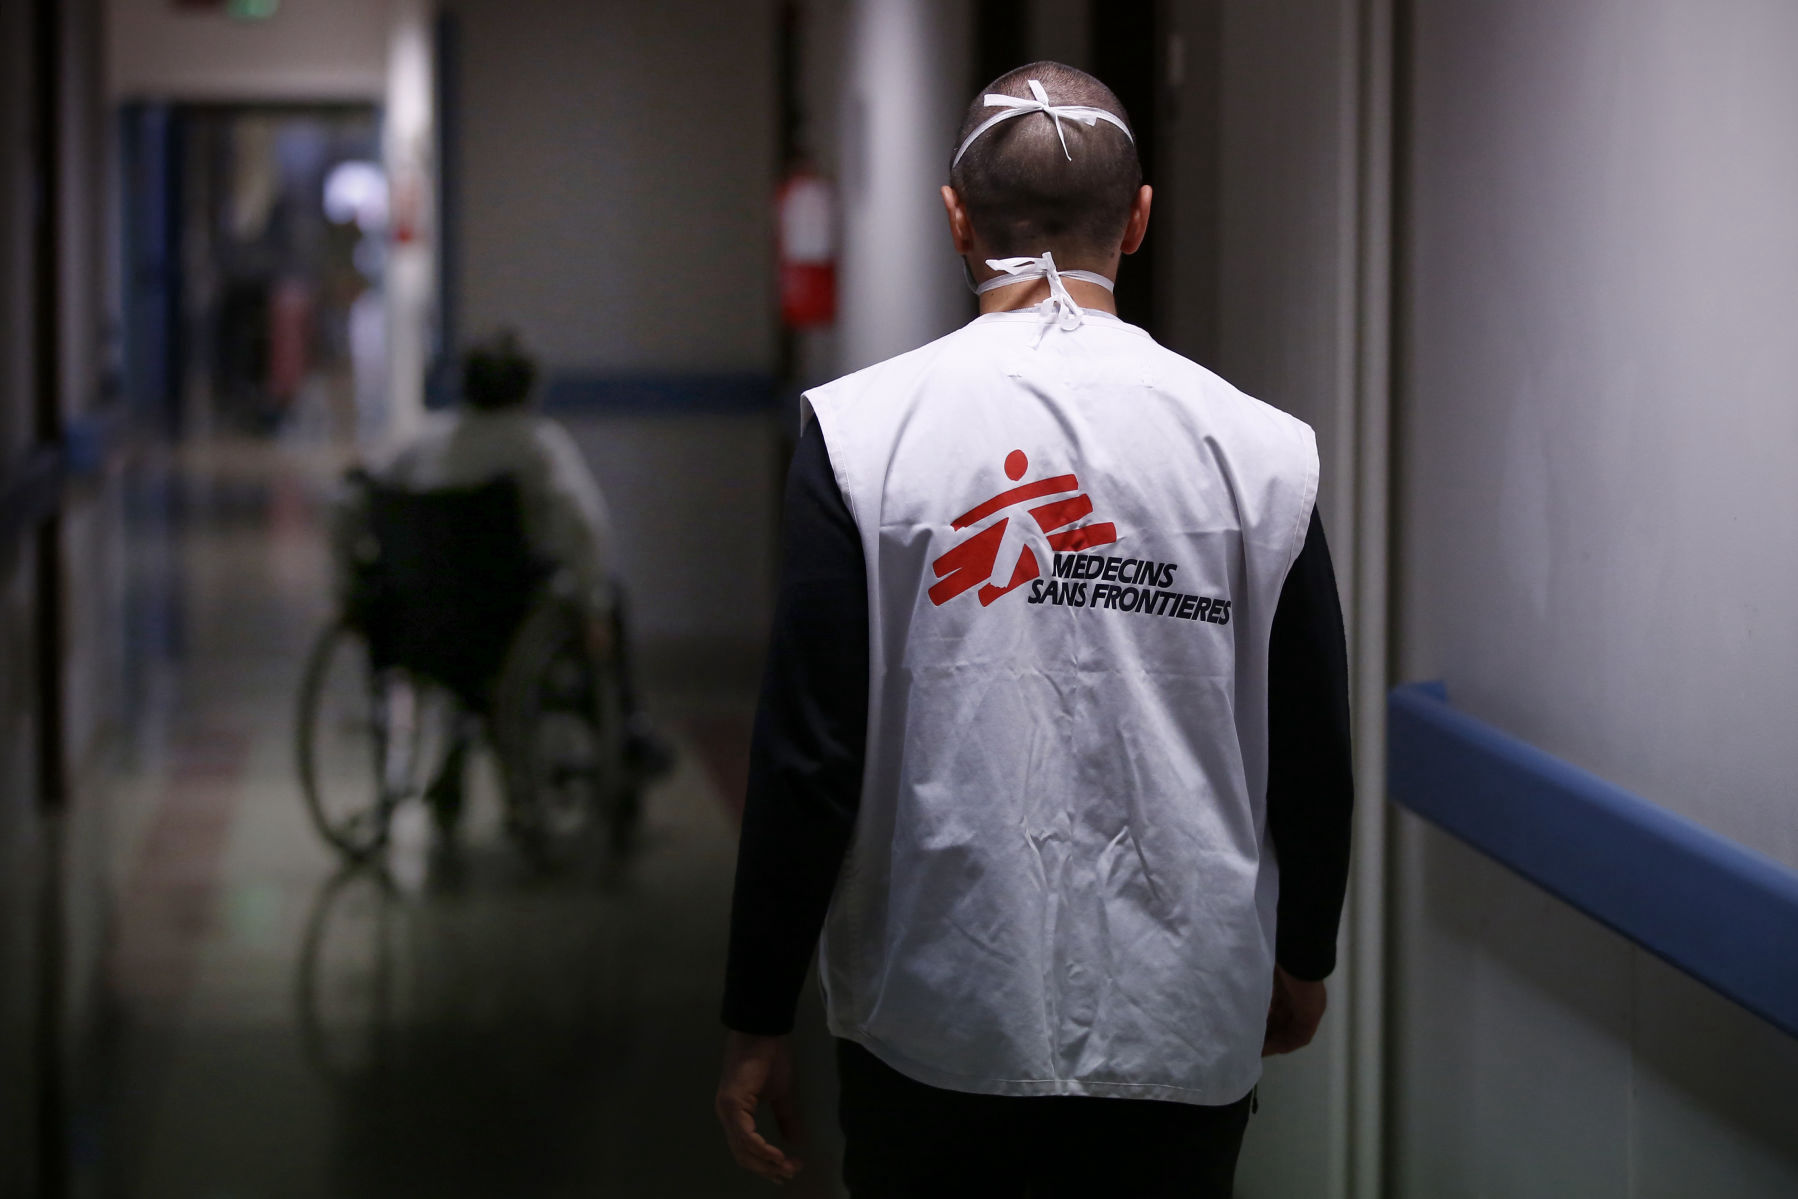 MSF intervention in a nursing home in Marche region, Italy. April 2020. ©MSF/Vincenzo Livieri.